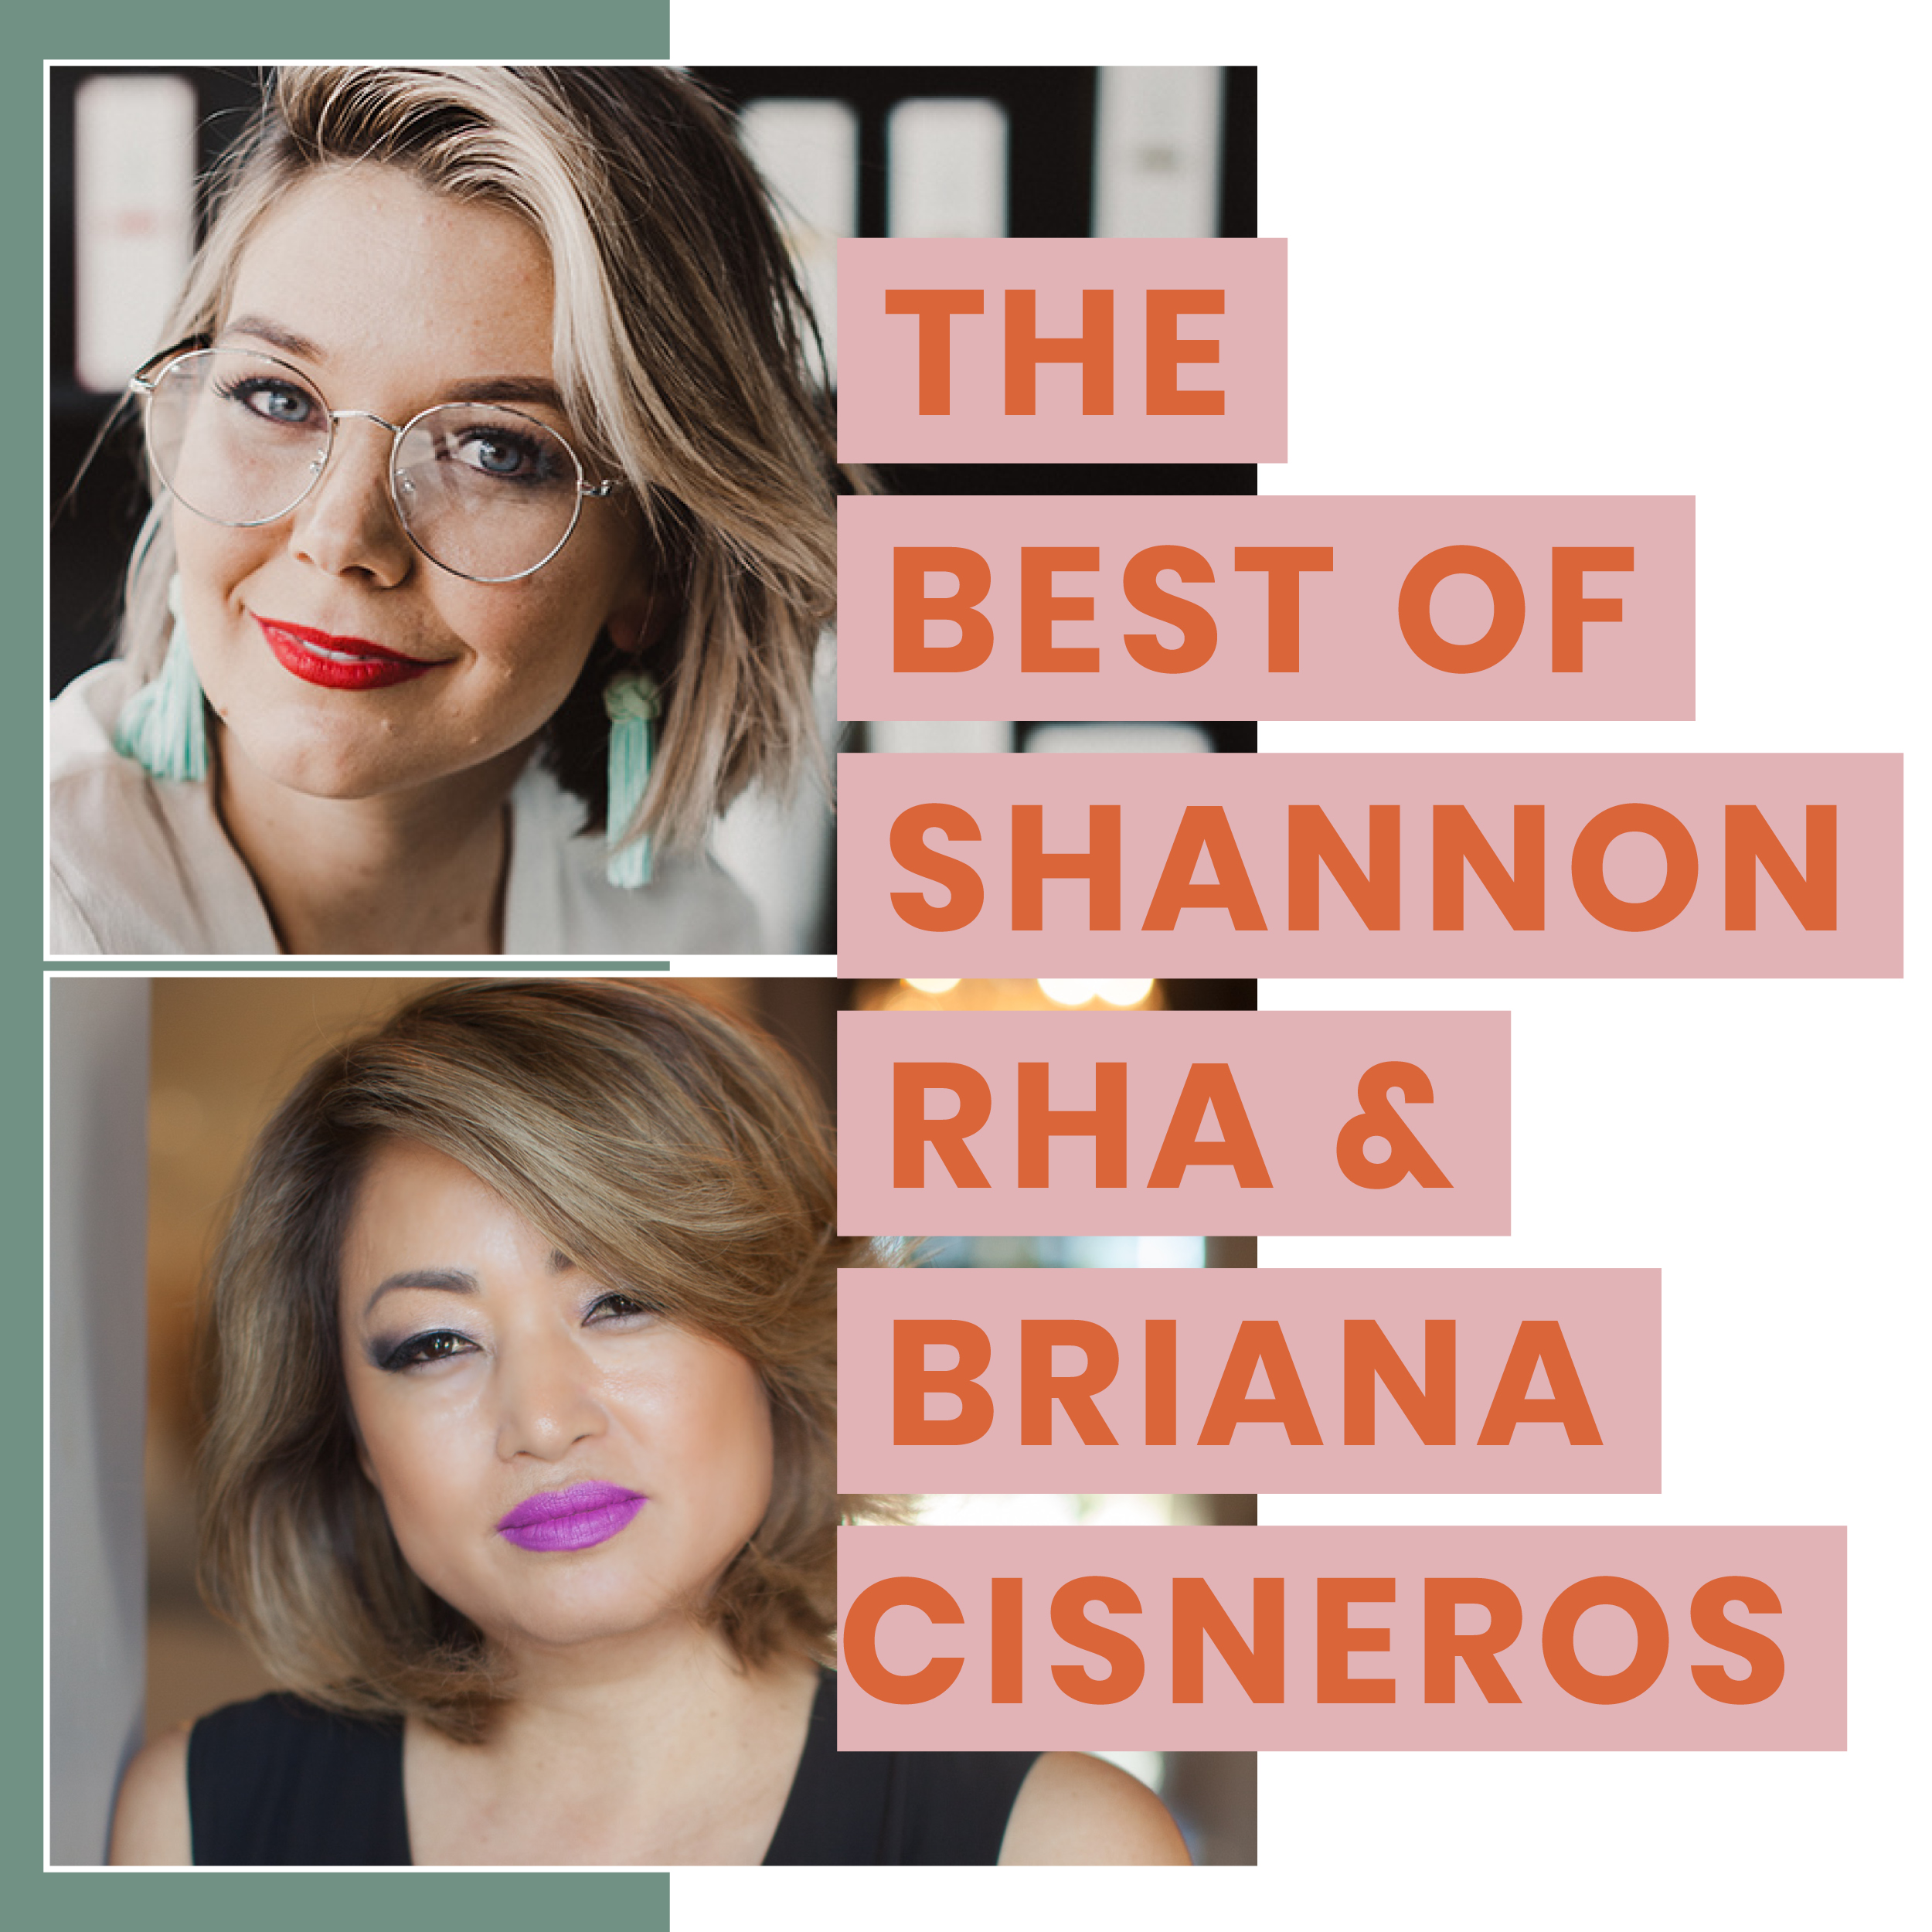 - This one hour look and learn class will teach you the tips, ticks and secretes to creating beautiful color for any client.More about Shannon and Briana